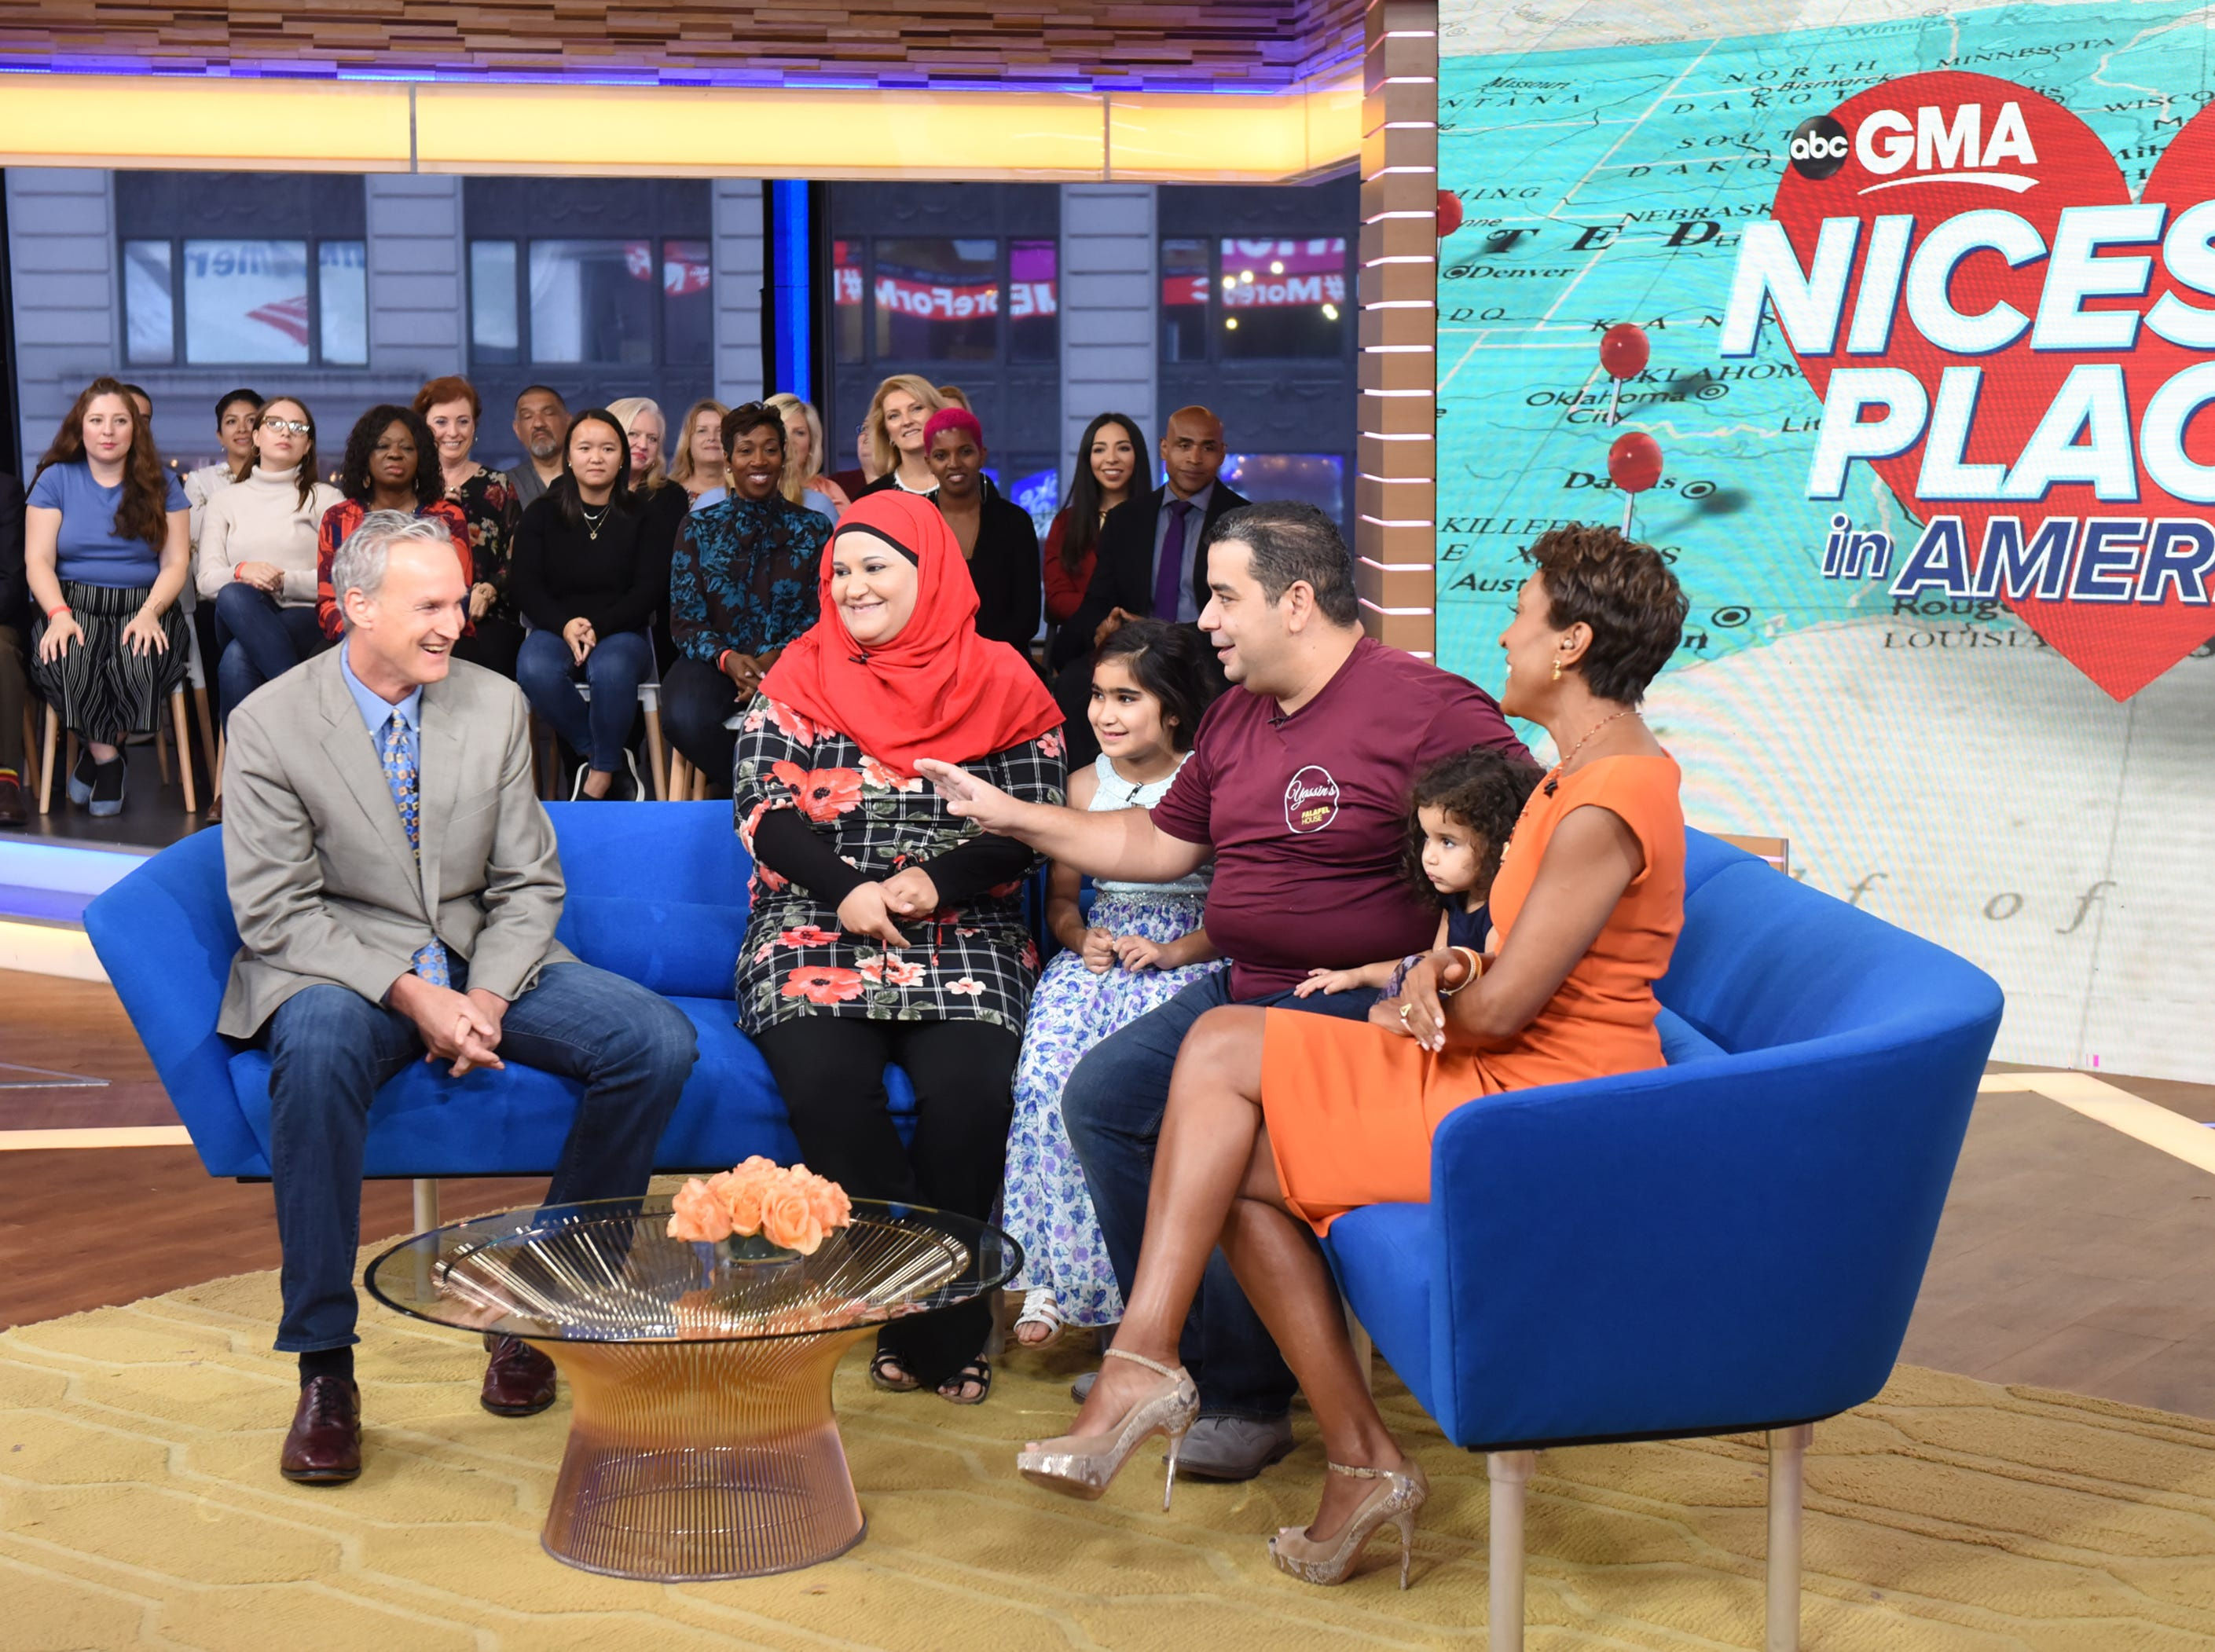 """Yassin Terou, owner of Yassin's Falafel House in Knoxville, Tenn., which was rated the Nicest Place in America, and his family (center) are guests on """"Good Morning America,"""" on Thursday, October 11, 2018 on ABC. Pictured are Bruce Kelley (left), Terou and family, and GMA host Robin Roberts."""